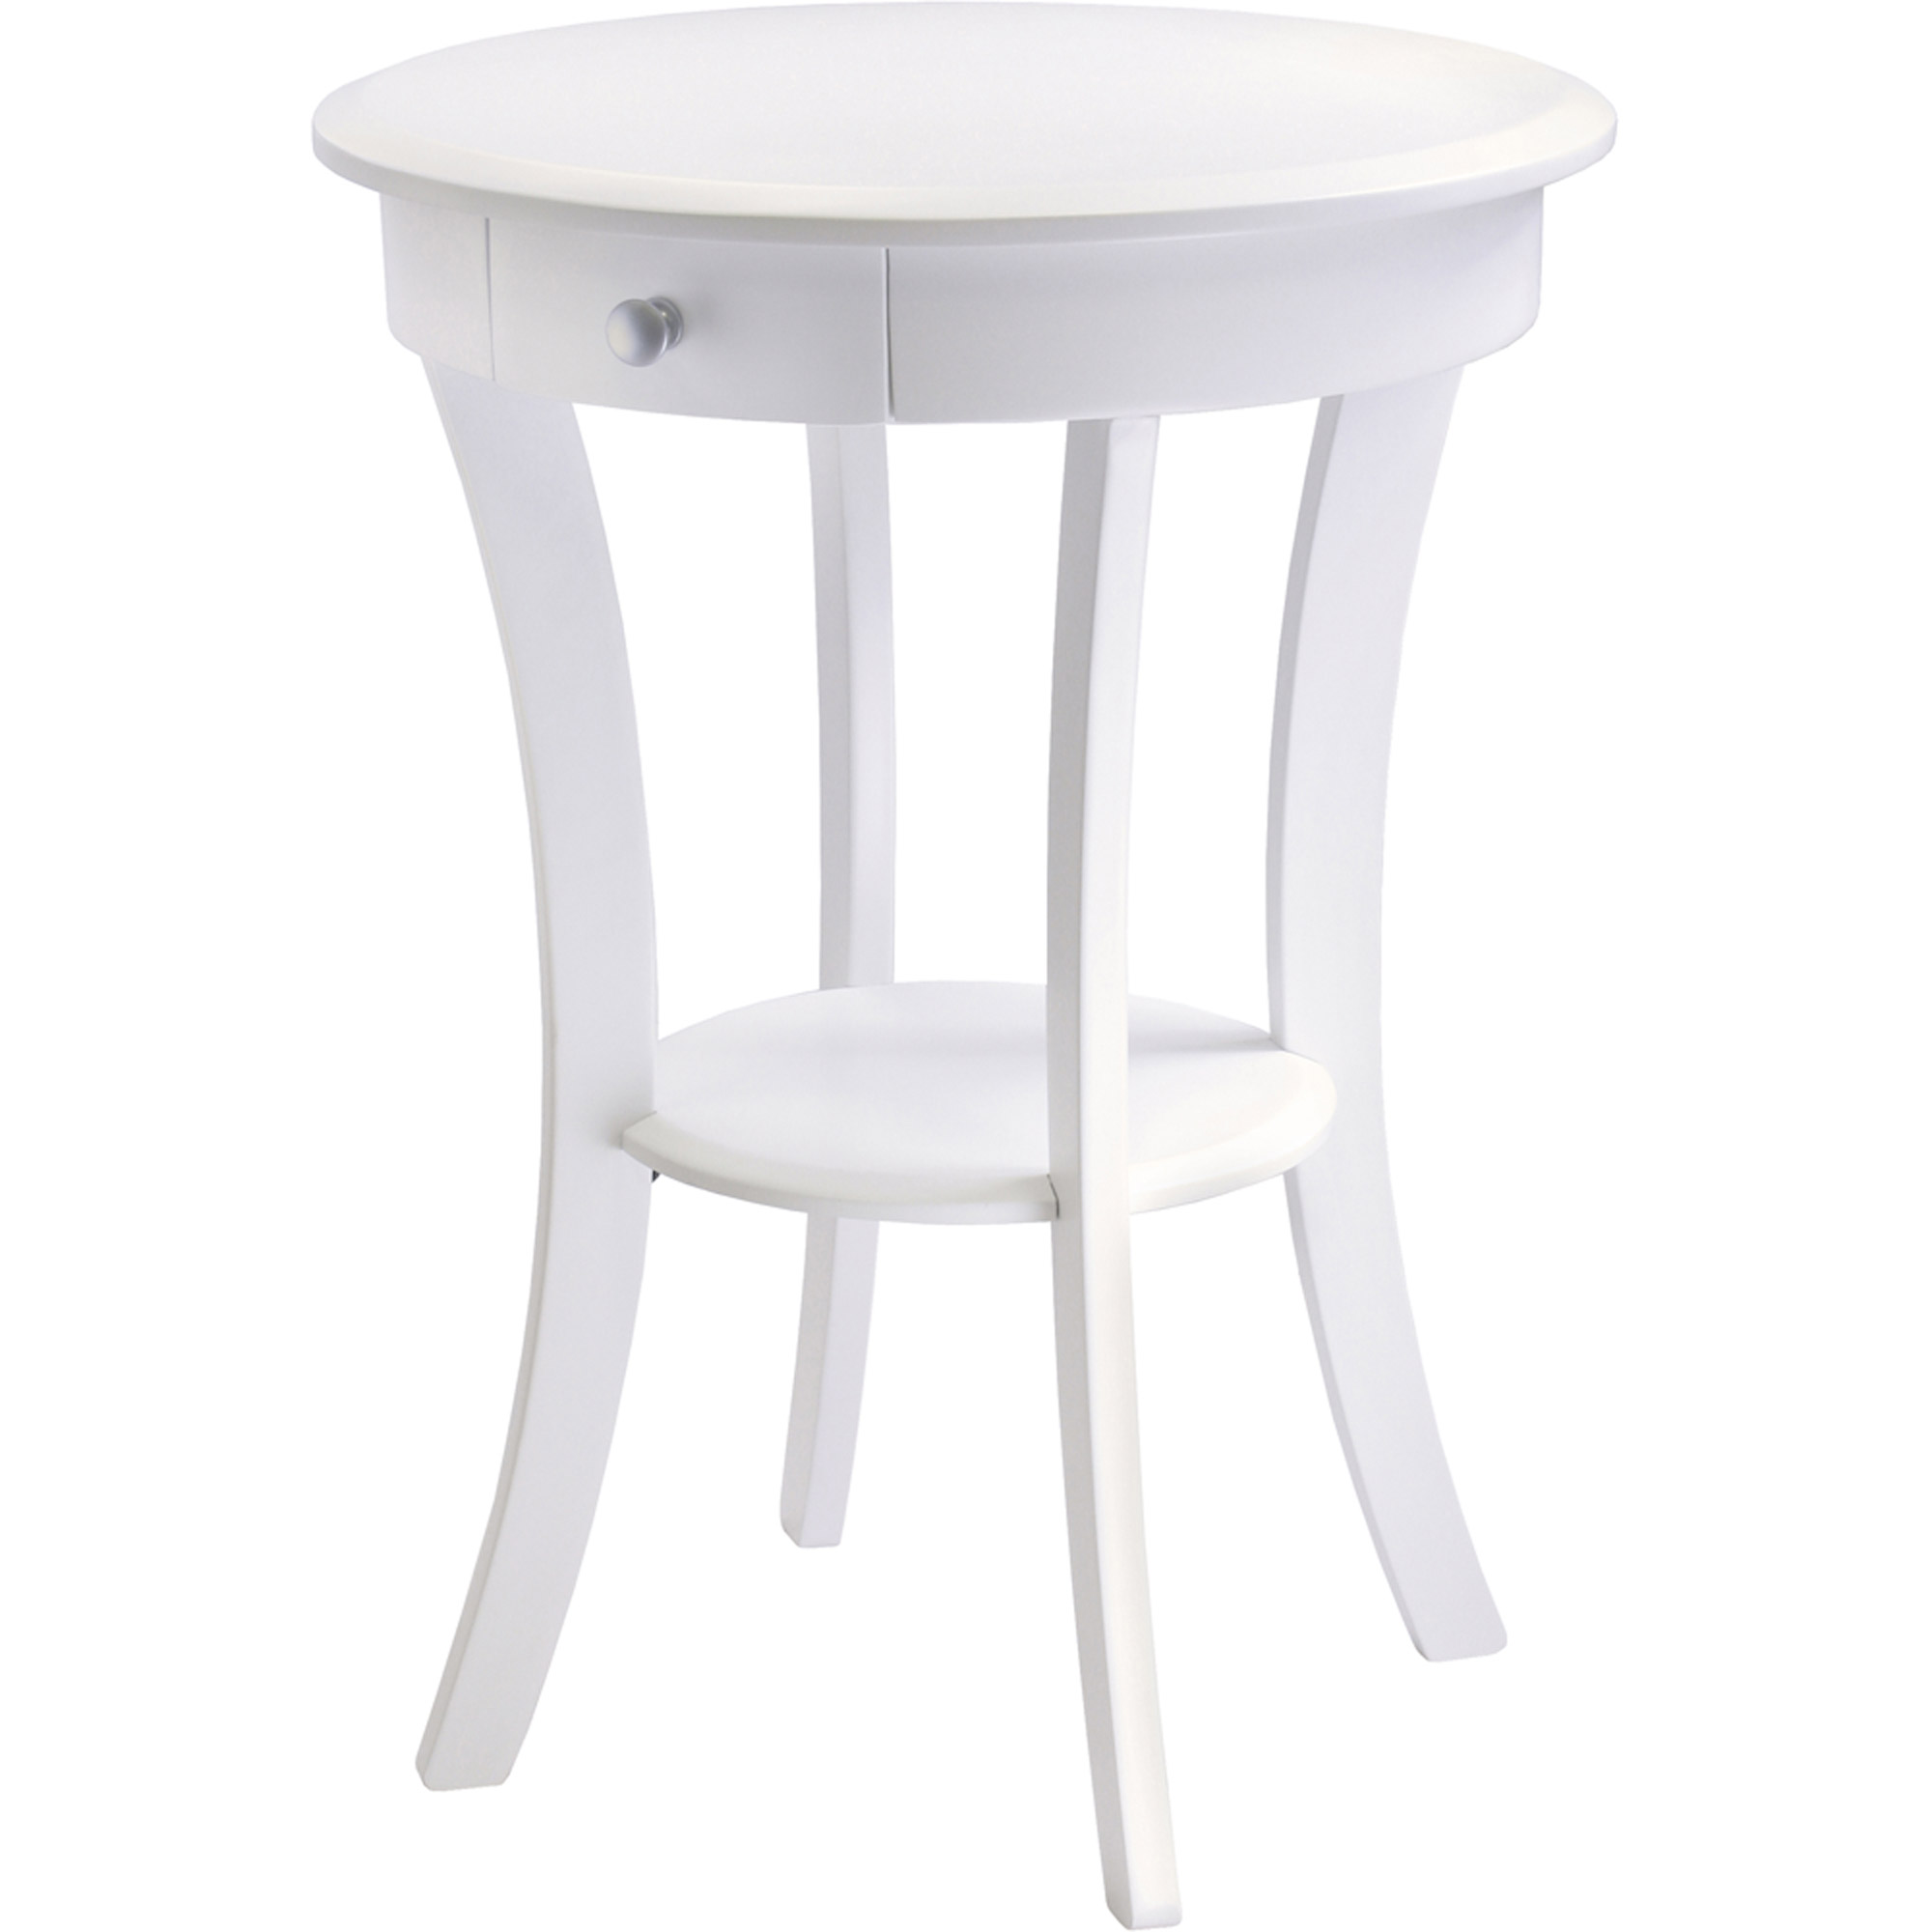 sasha round accent table white black dining and chairs rustic chairside oversized chair narrow nightstand with drawers target air fryer family room end tables homesense long